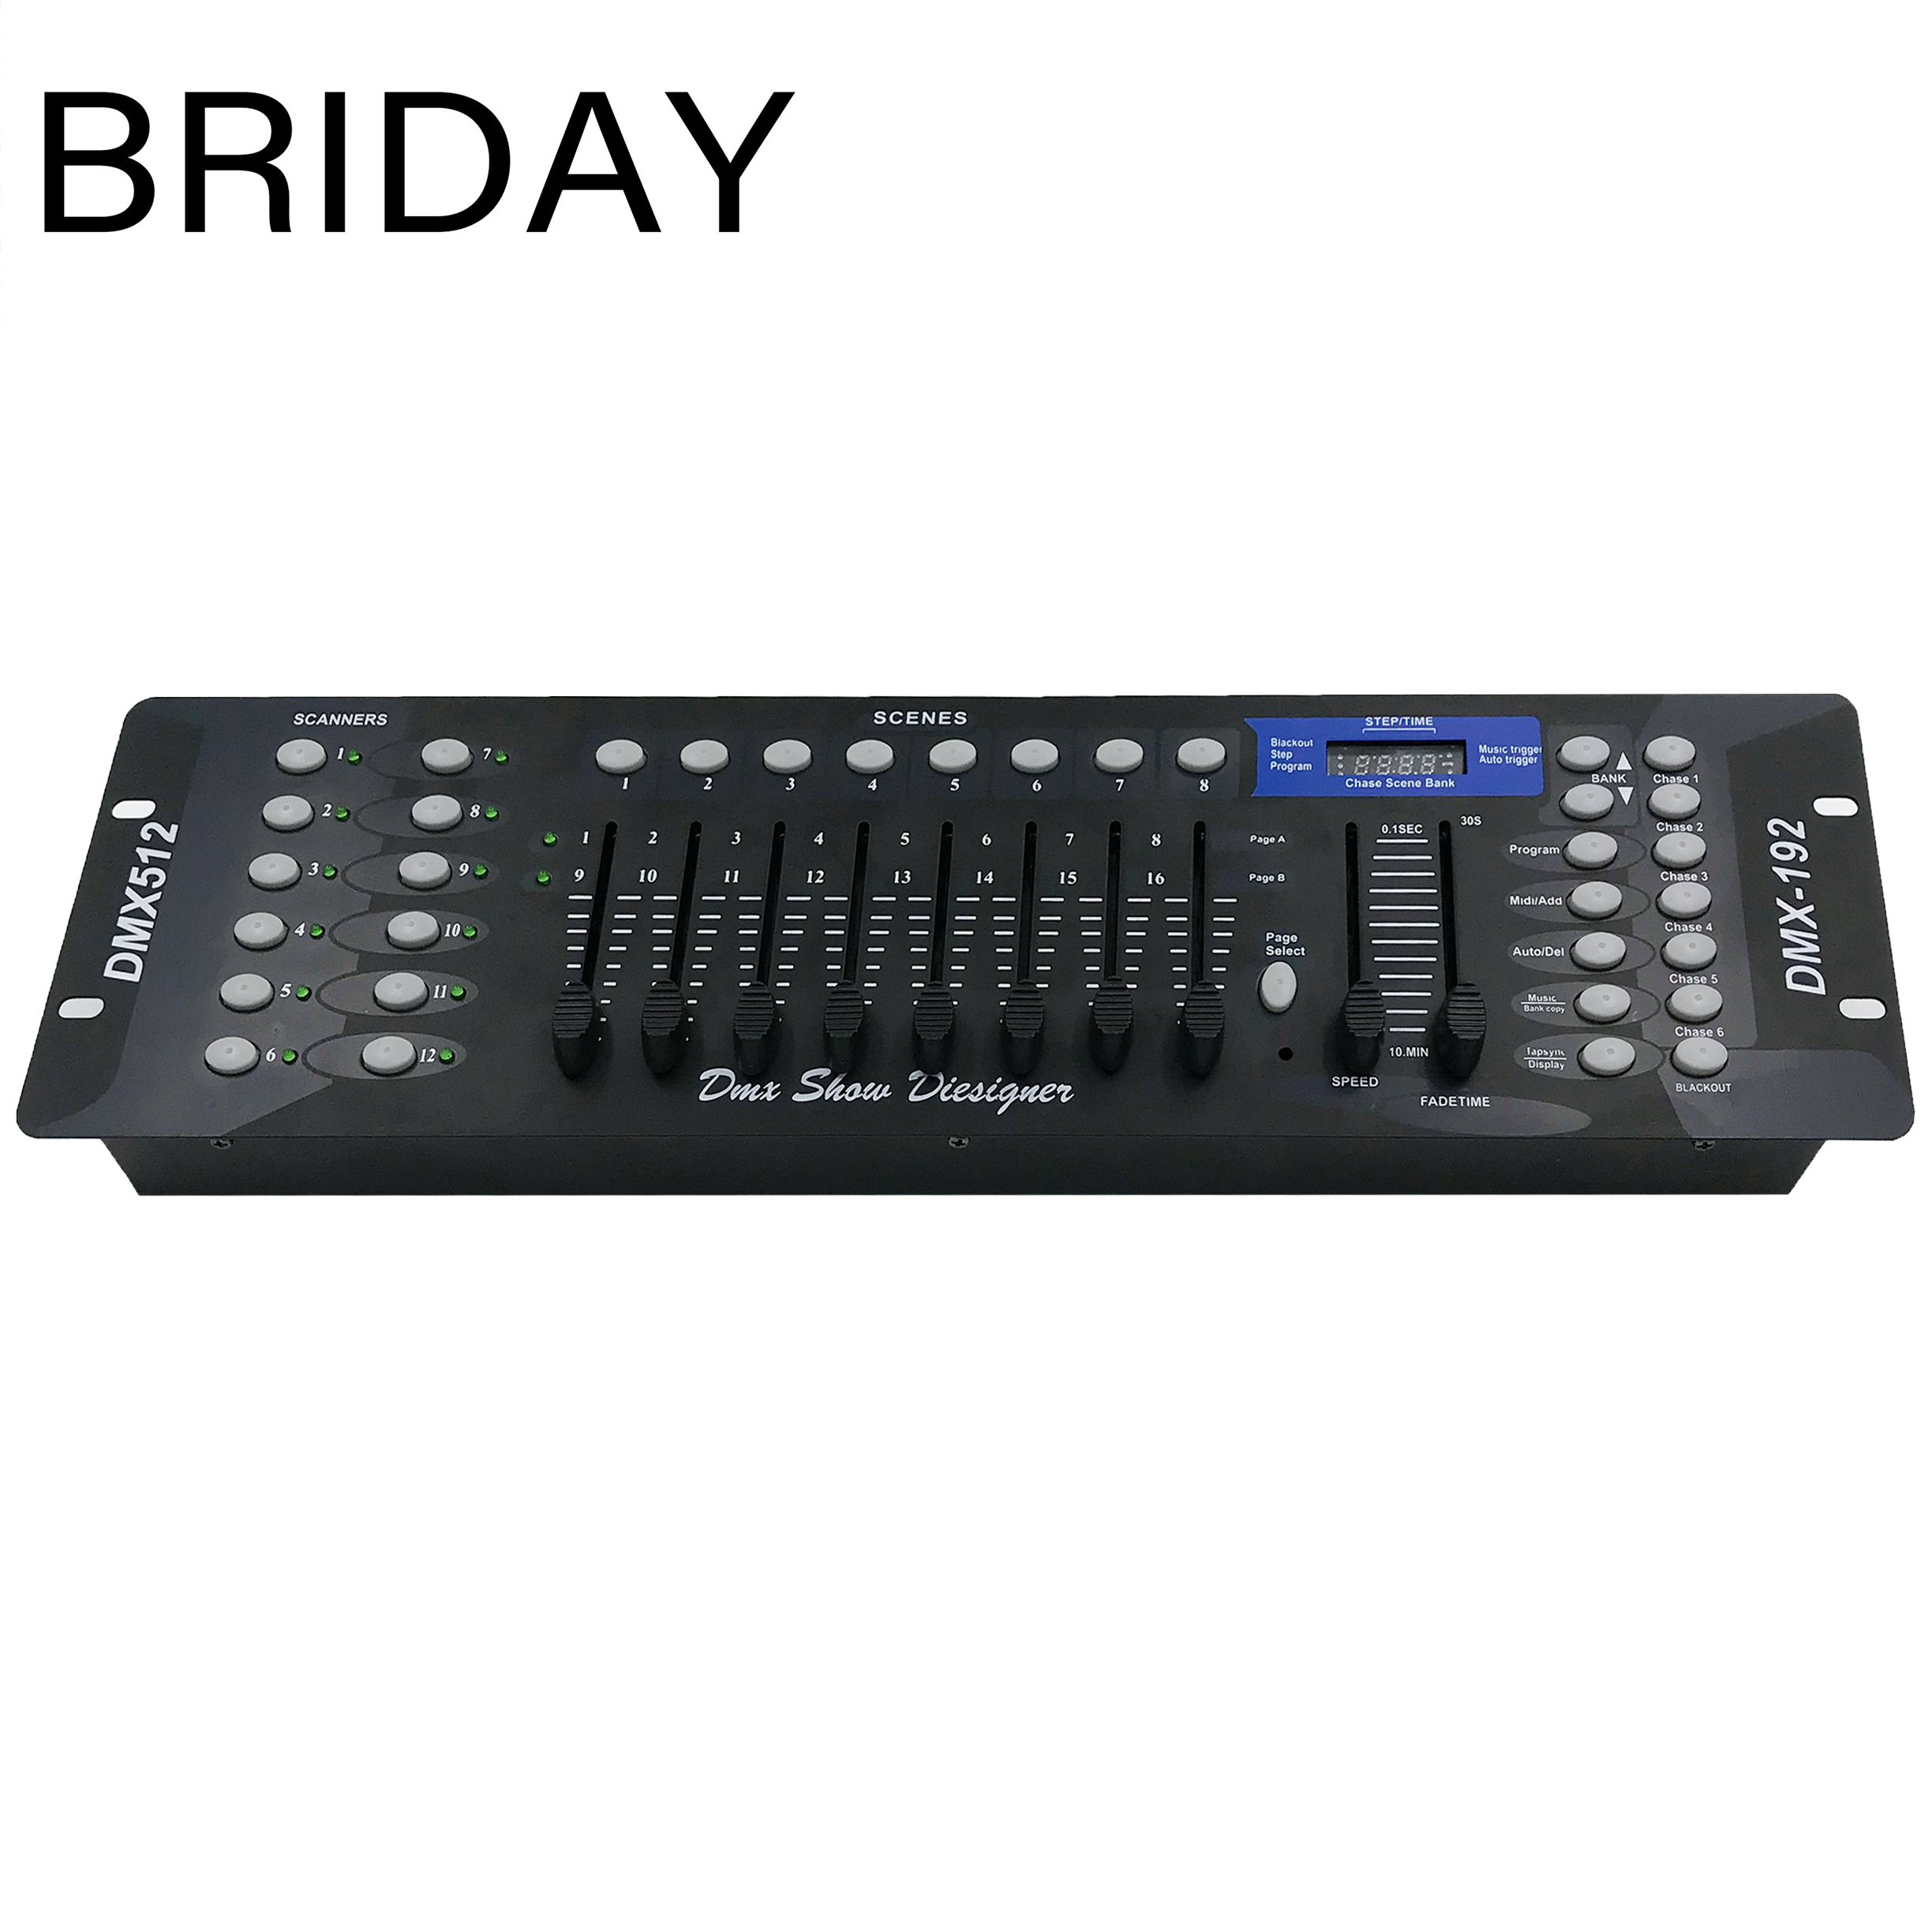 192 DMX Controller DJ Equipment DMX 512 Console Stage Lighting For LED Par Moving Head Spotlights DJ Controlle